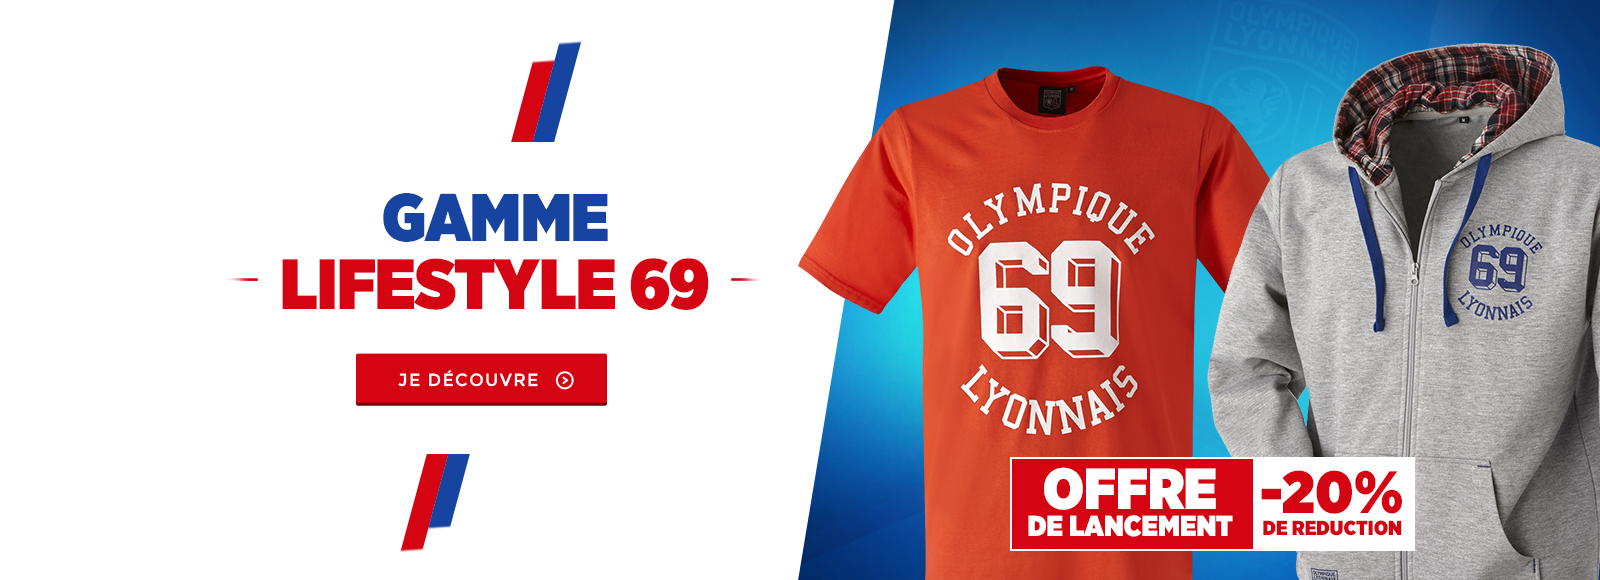 Gamme Lifestyle 69